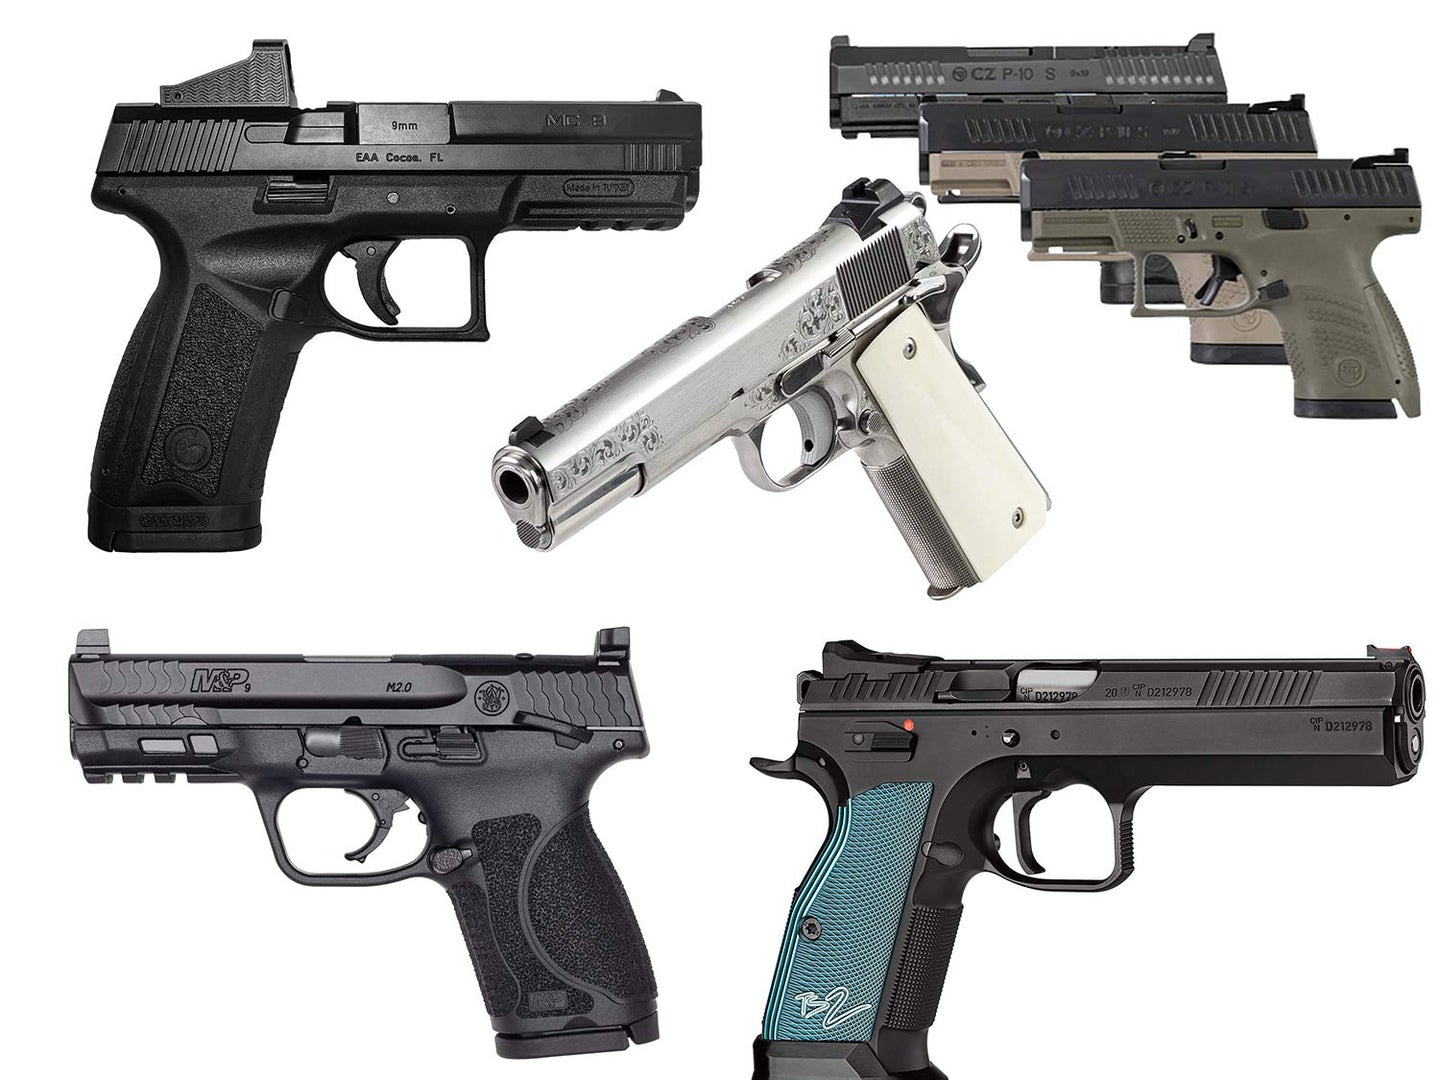 A collage of handguns on a white background.